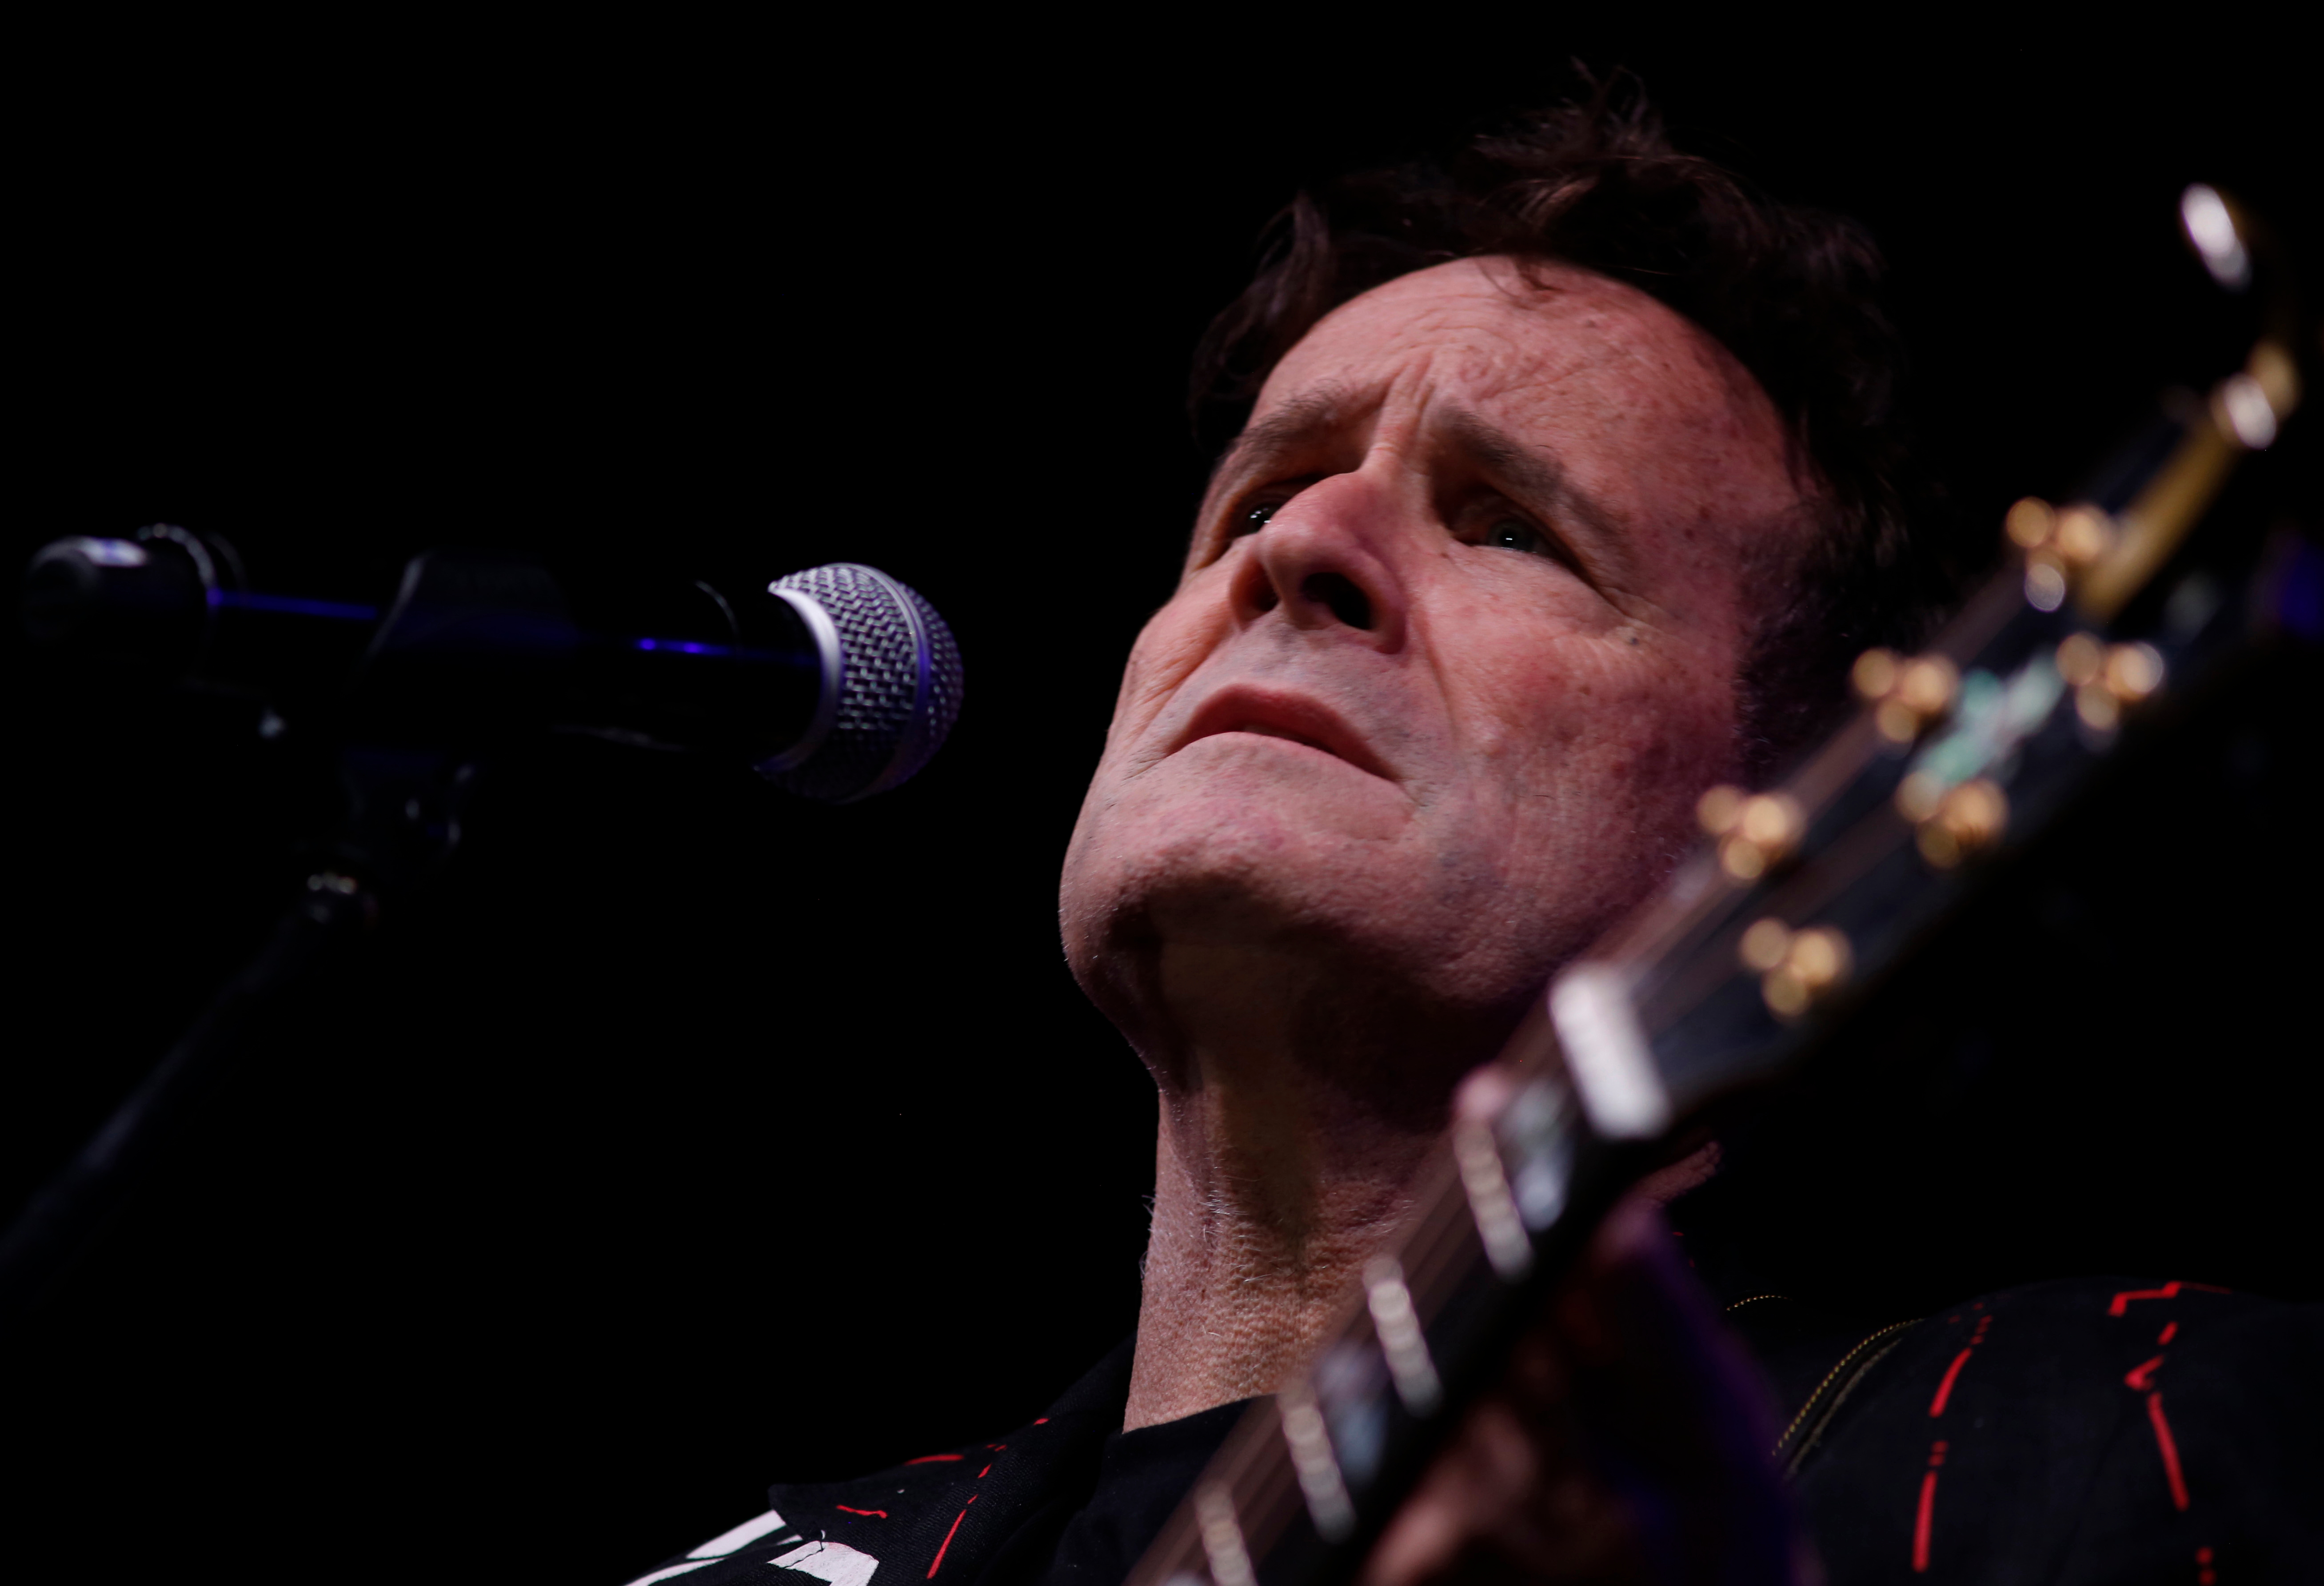 """On, musician Johnny Clegg on stage at a farewell concert in Johannesburg. At 64, his pancreatic cancer in remission, Clegg performed as part of his """"Final Journey"""" tour, delivering the hybrid songs inspired by Zulu and South African township rhythms, as well as pop, folk and country and western, that he developed in defiance of South Africa's apartheid system decades agoJohnny Clegg, Johannesburg, South Africa - 11 Nov 2017"""